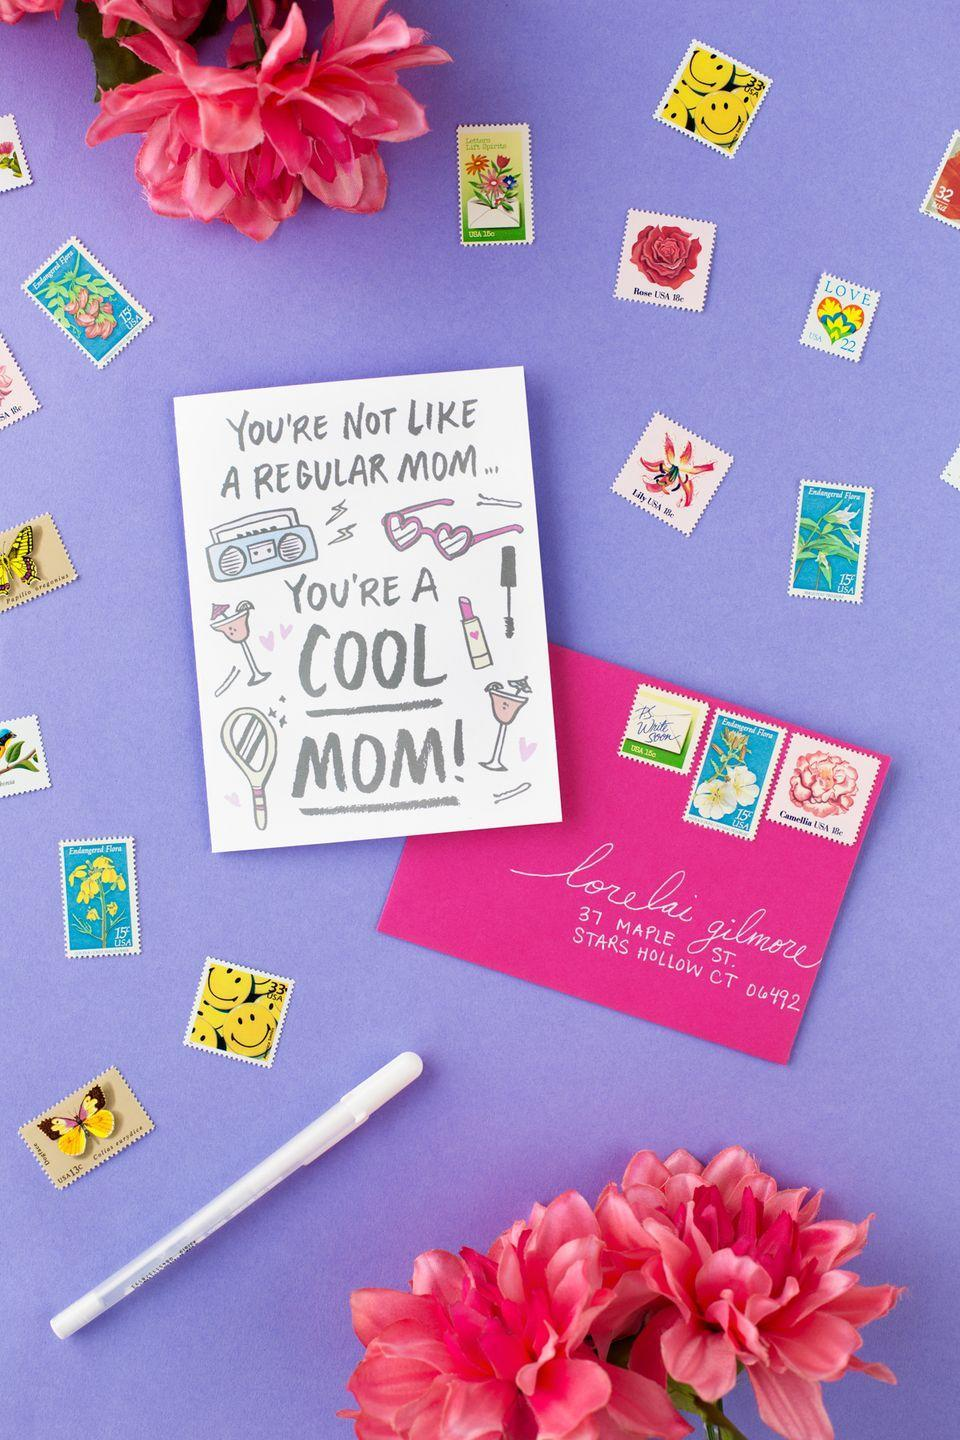 """<p>Tell your mom just how cool you think she is with this cute <em>Mean Girls</em>-inspired printable card. </p><p><strong>Get the printable at <a href=""""https://studiodiy.com/free-printable-mothers-day-cards/"""" rel=""""nofollow noopener"""" target=""""_blank"""" data-ylk=""""slk:Studio DIY!"""" class=""""link rapid-noclick-resp"""">Studio DIY!</a></strong></p><p><a class=""""link rapid-noclick-resp"""" href=""""https://www.amazon.com/Heavyweight-Blank-Greeting-Envelopes-Inches/dp/B00OS2YL9C?tag=syn-yahoo-20&ascsubtag=%5Bartid%7C2164.g.35668391%5Bsrc%7Cyahoo-us"""" rel=""""nofollow noopener"""" target=""""_blank"""" data-ylk=""""slk:SHOP BLANK WHITE GREETING CARDS"""">SHOP BLANK WHITE GREETING CARDS </a></p>"""